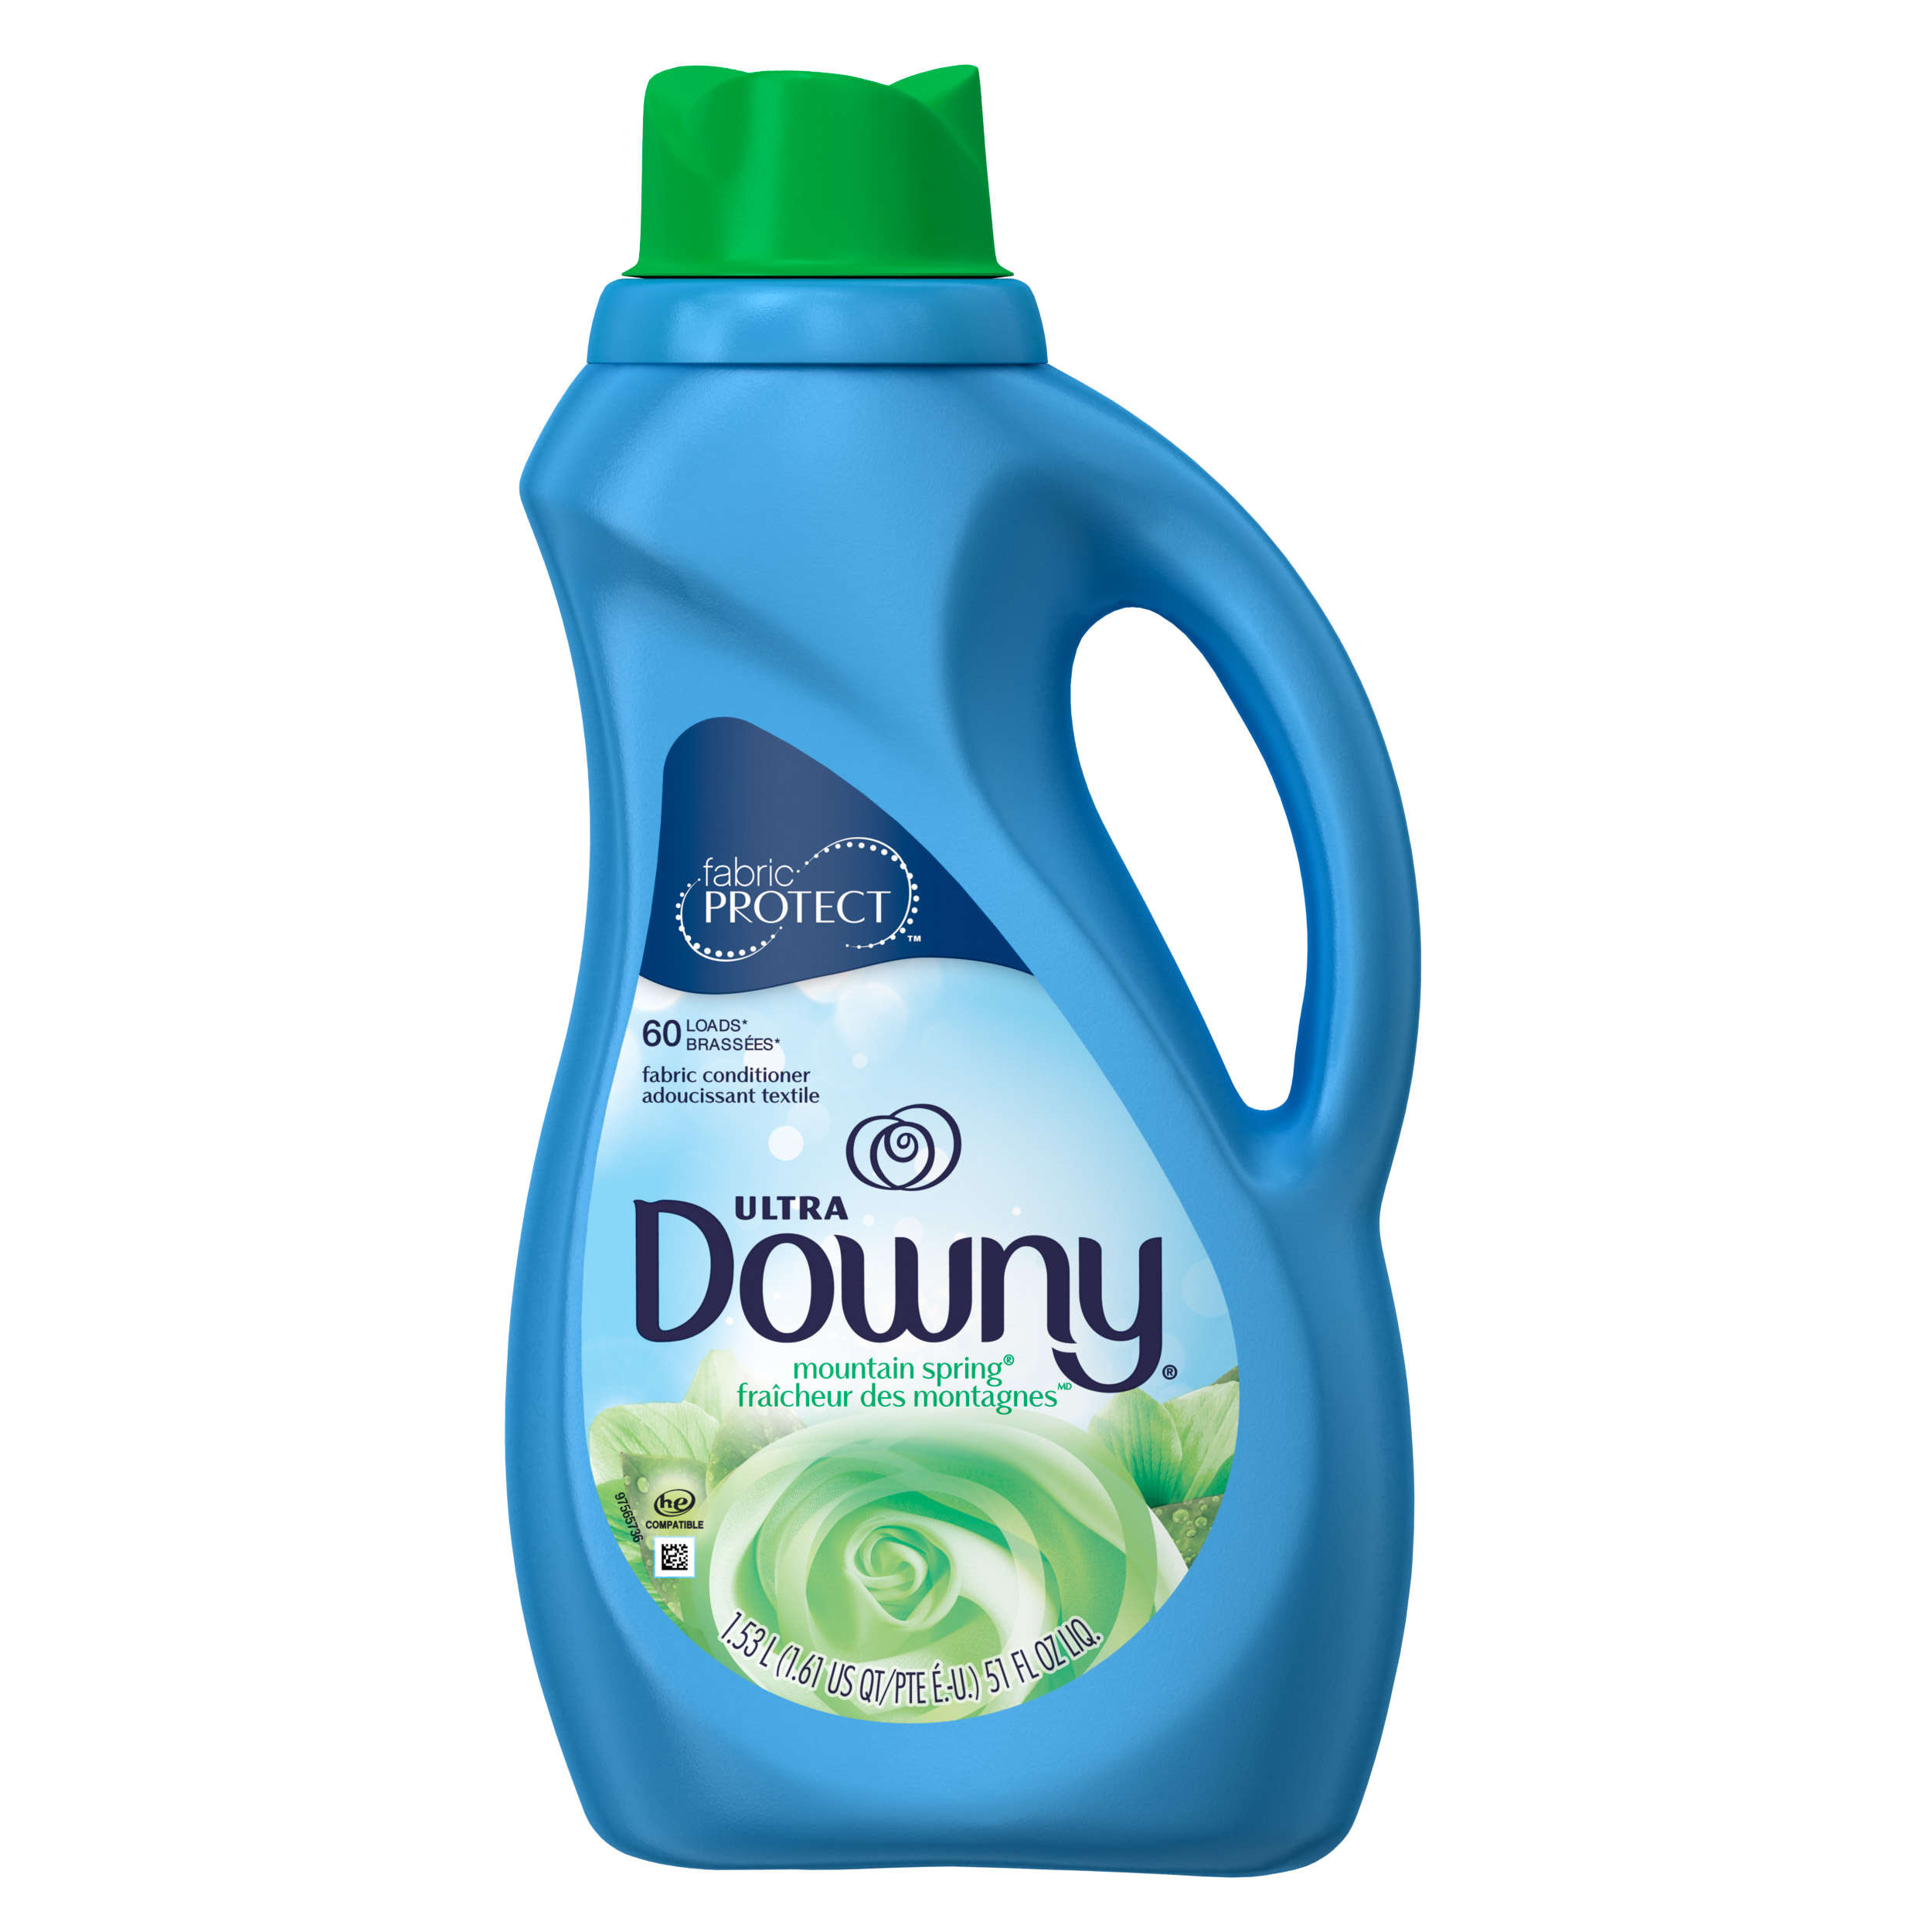 Ultra Downy Mountain Spring Liquid Fabric Conditioner (Fabric Softener), 51 FL OZ